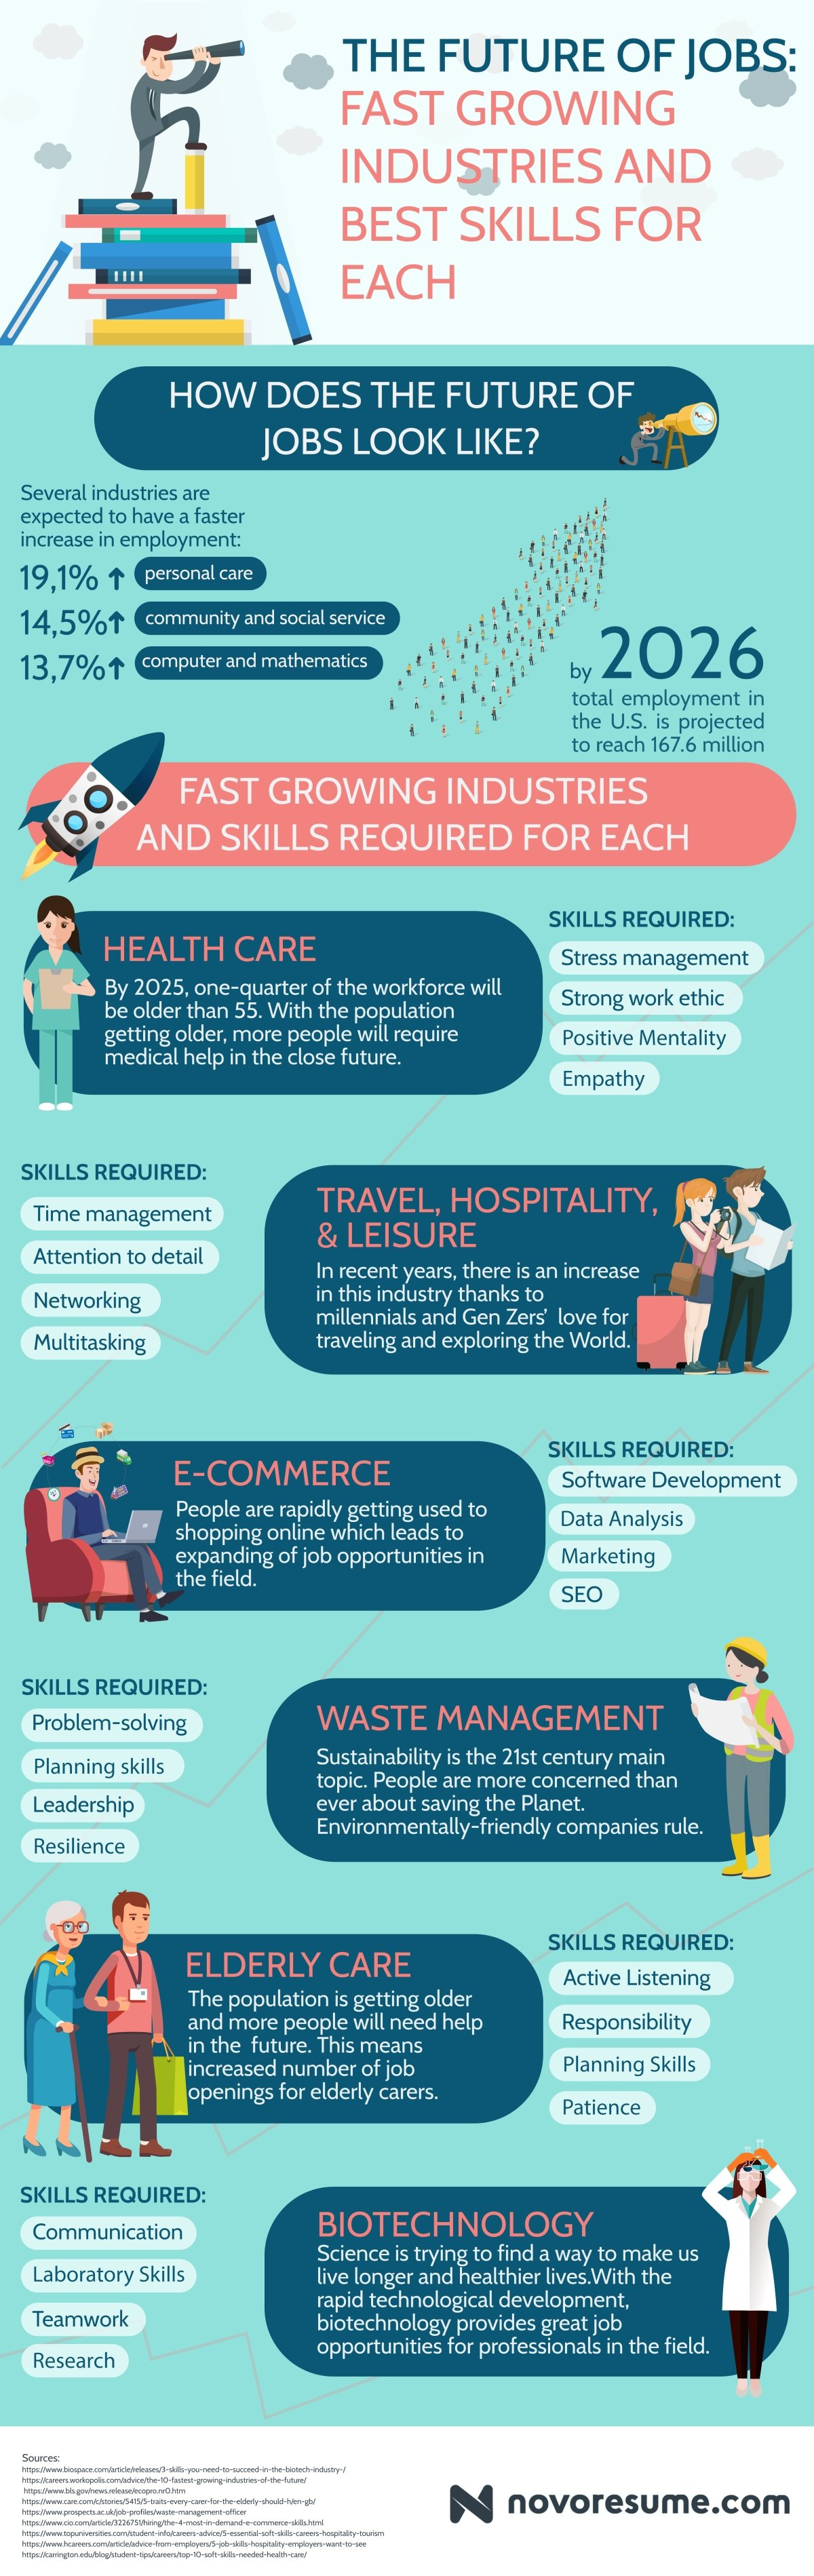 The Future of Jobs: Fastest Growing Industries and the Best Skills for Each